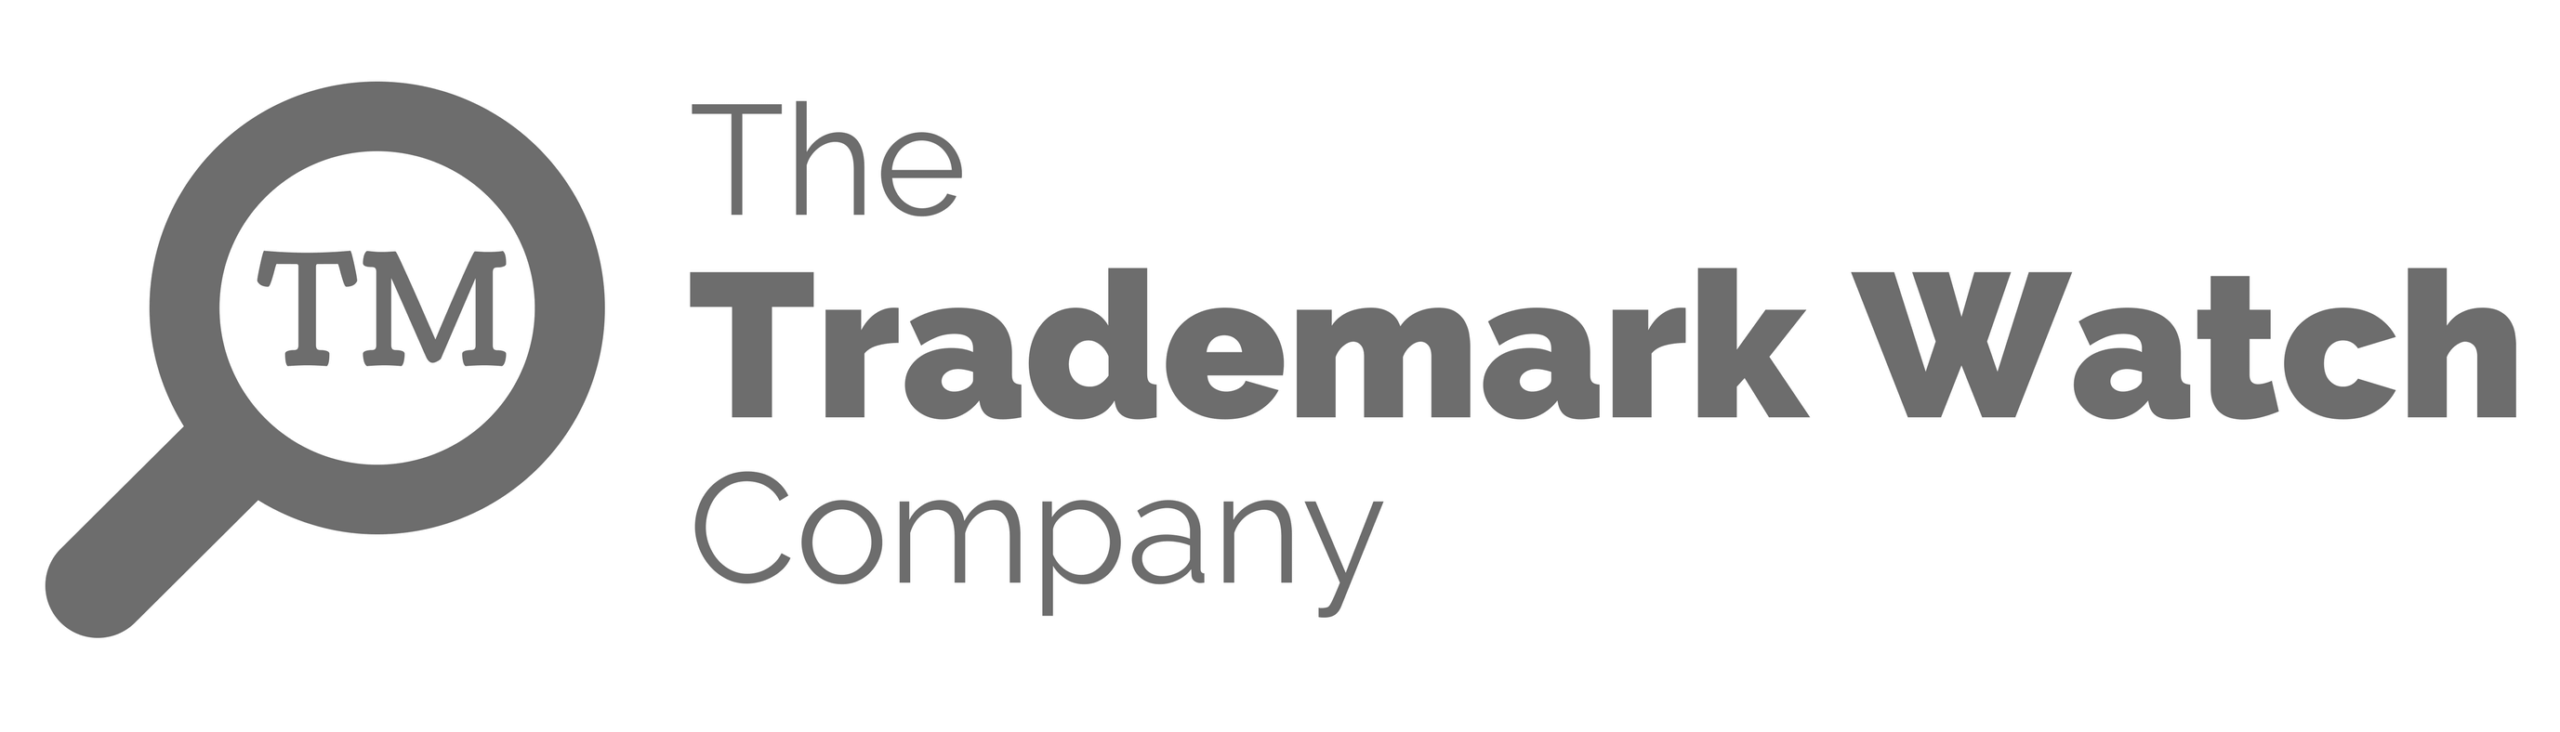 The Trademark Watch Company